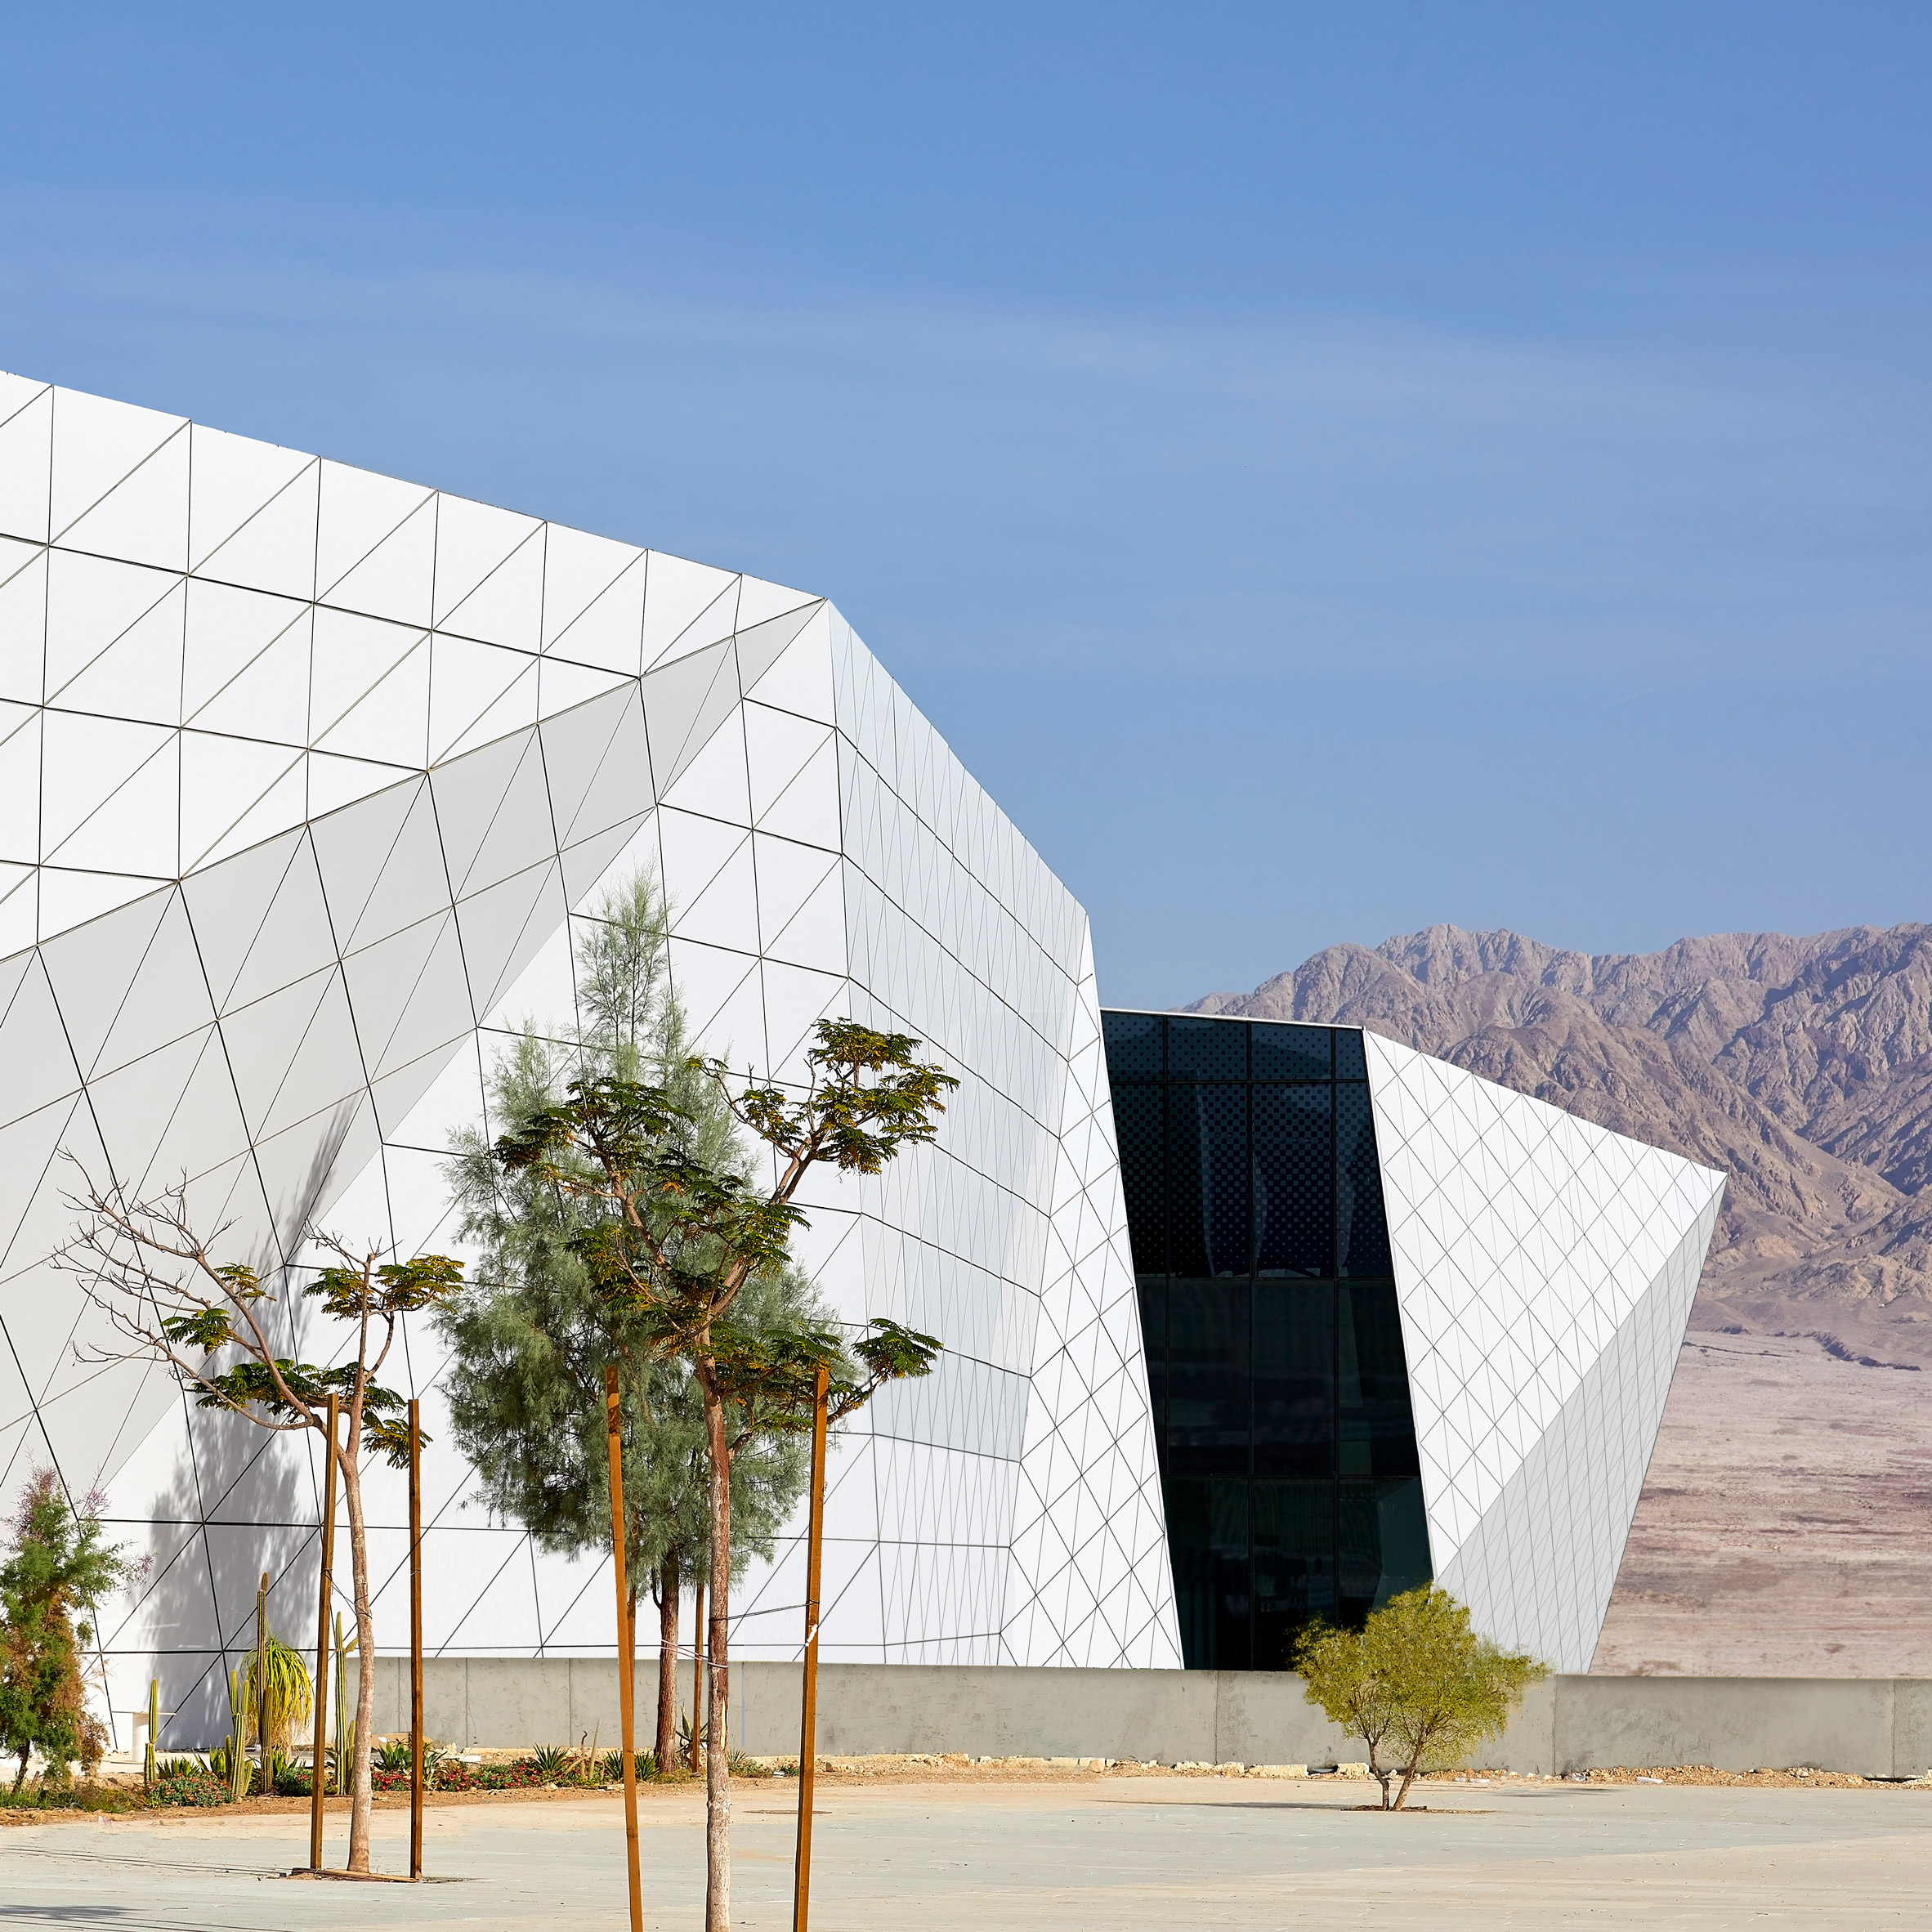 Ramon Airport by Amir Mann-Ami Shinar Architects and Moshe Zur Architects in Negev desert, Israel